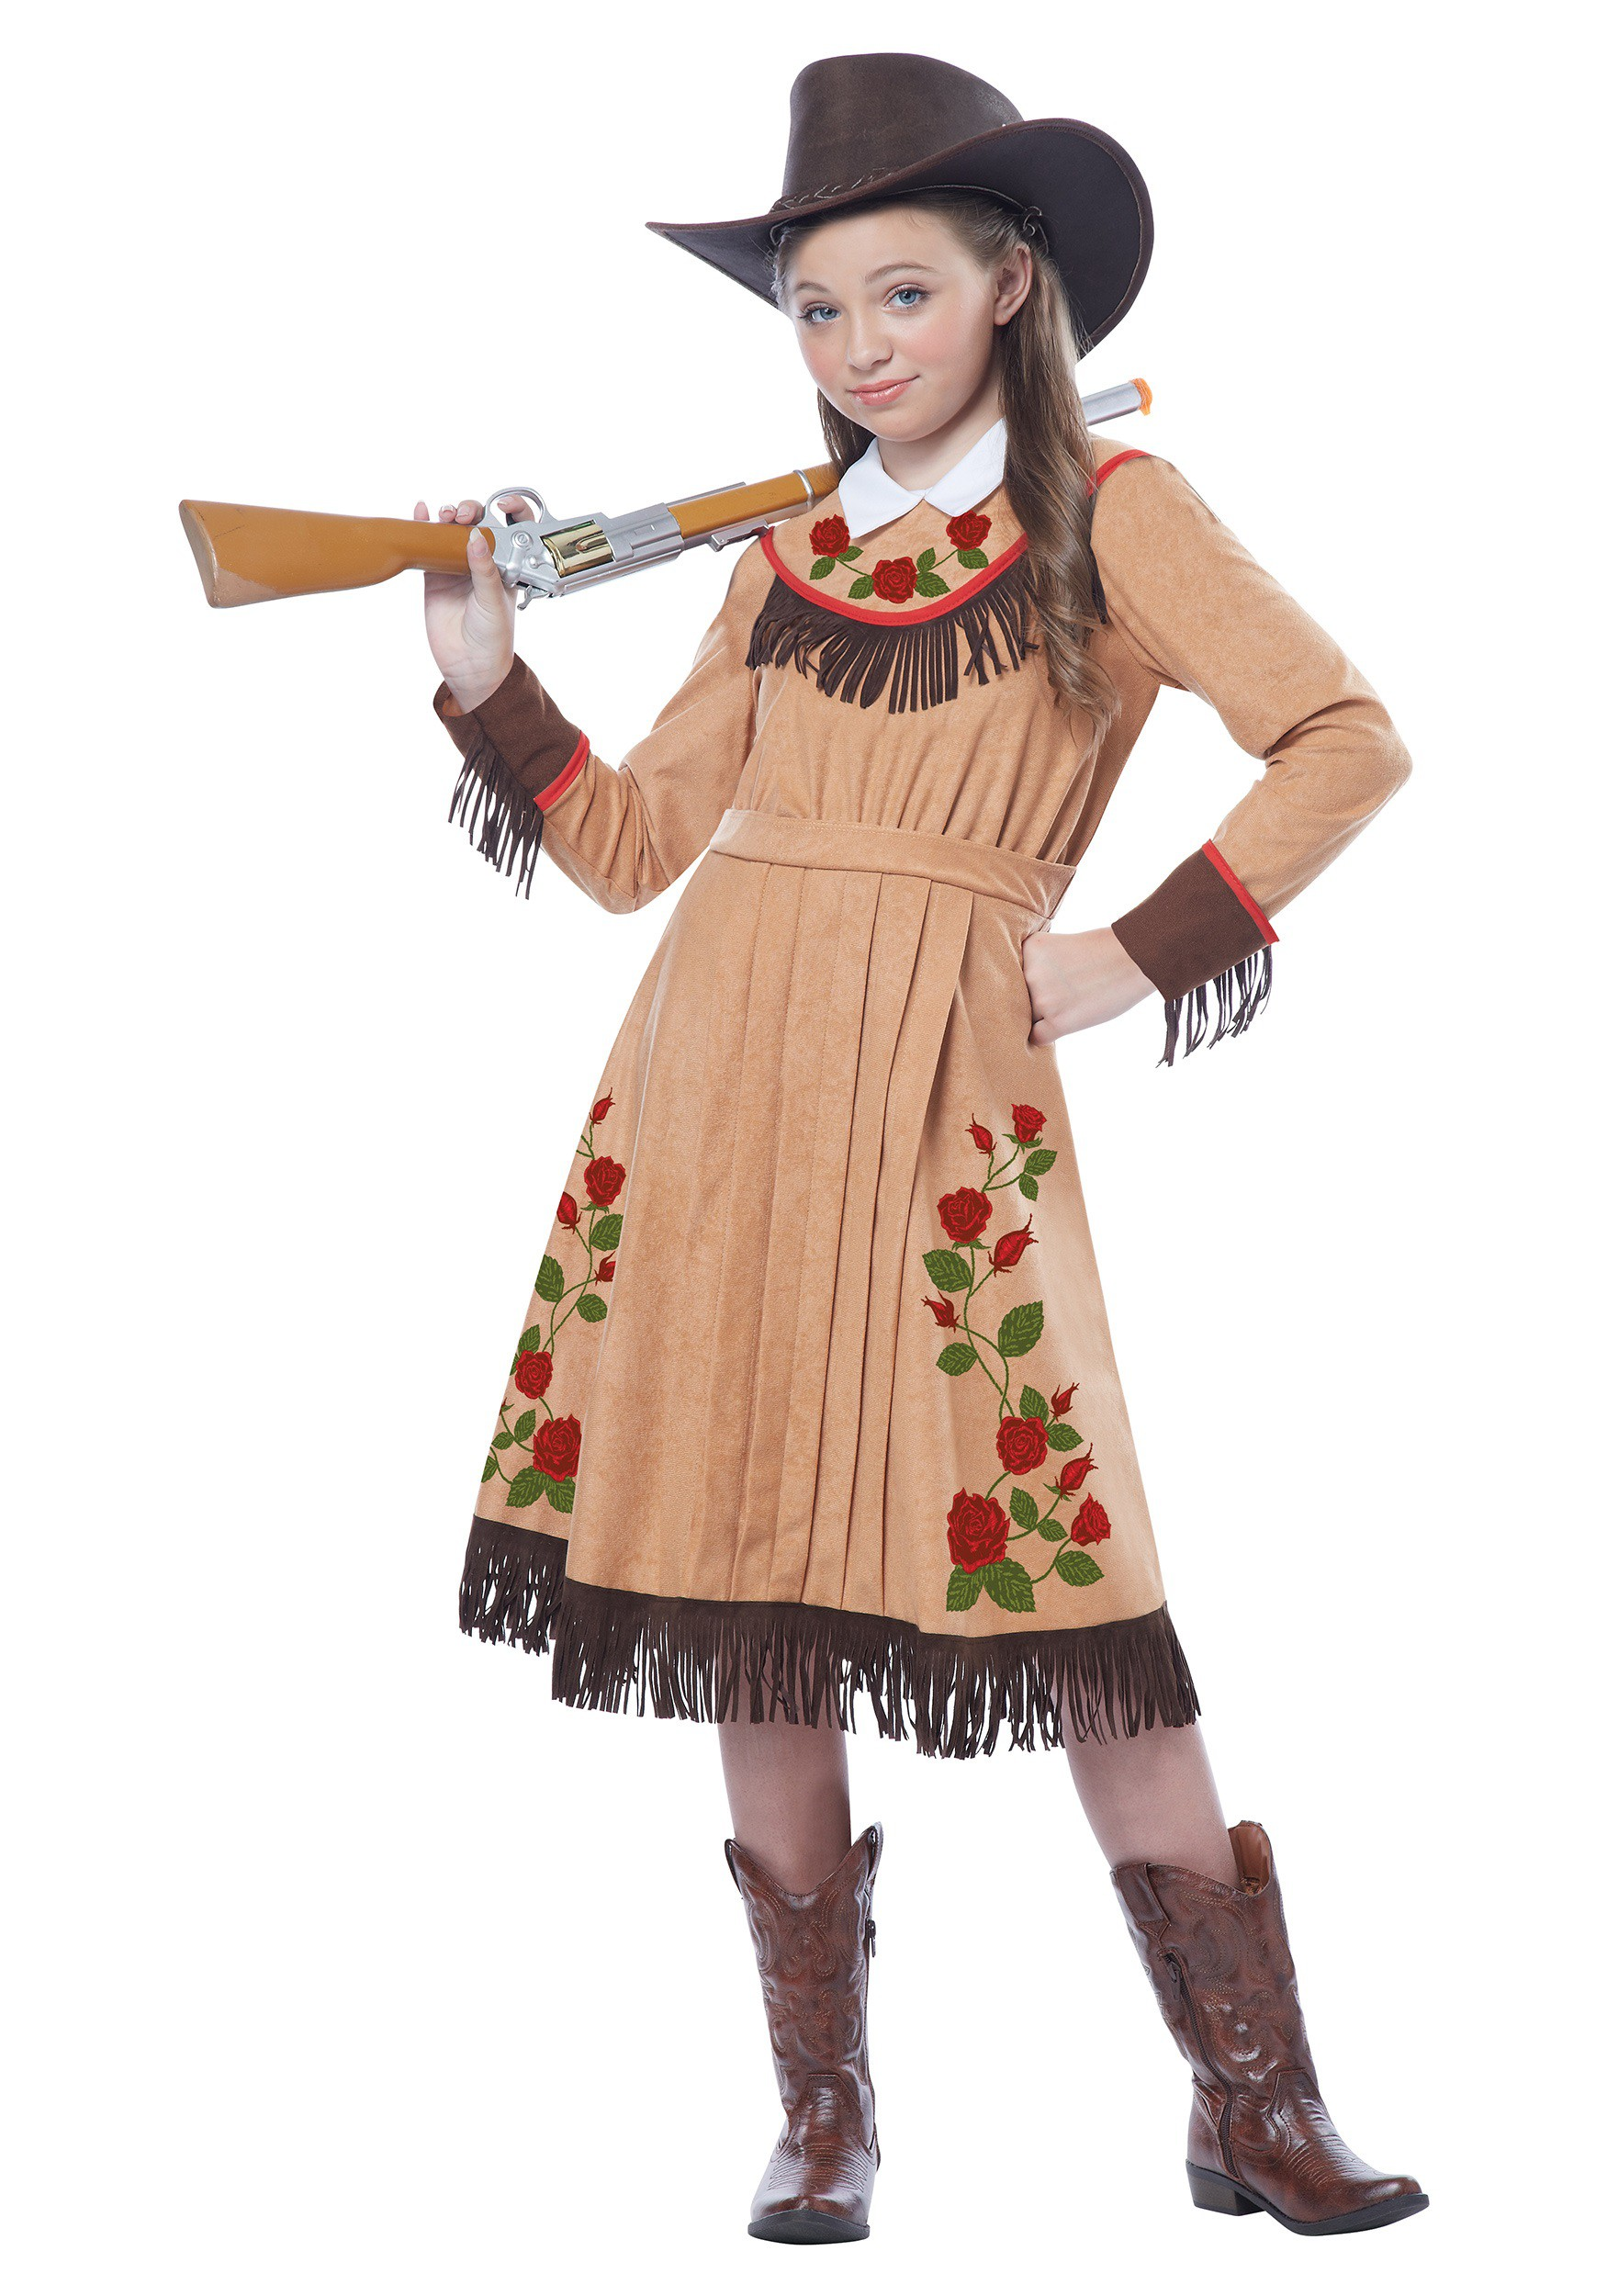 Girl Reindeer Costume Girl's Annie Oakley Costume